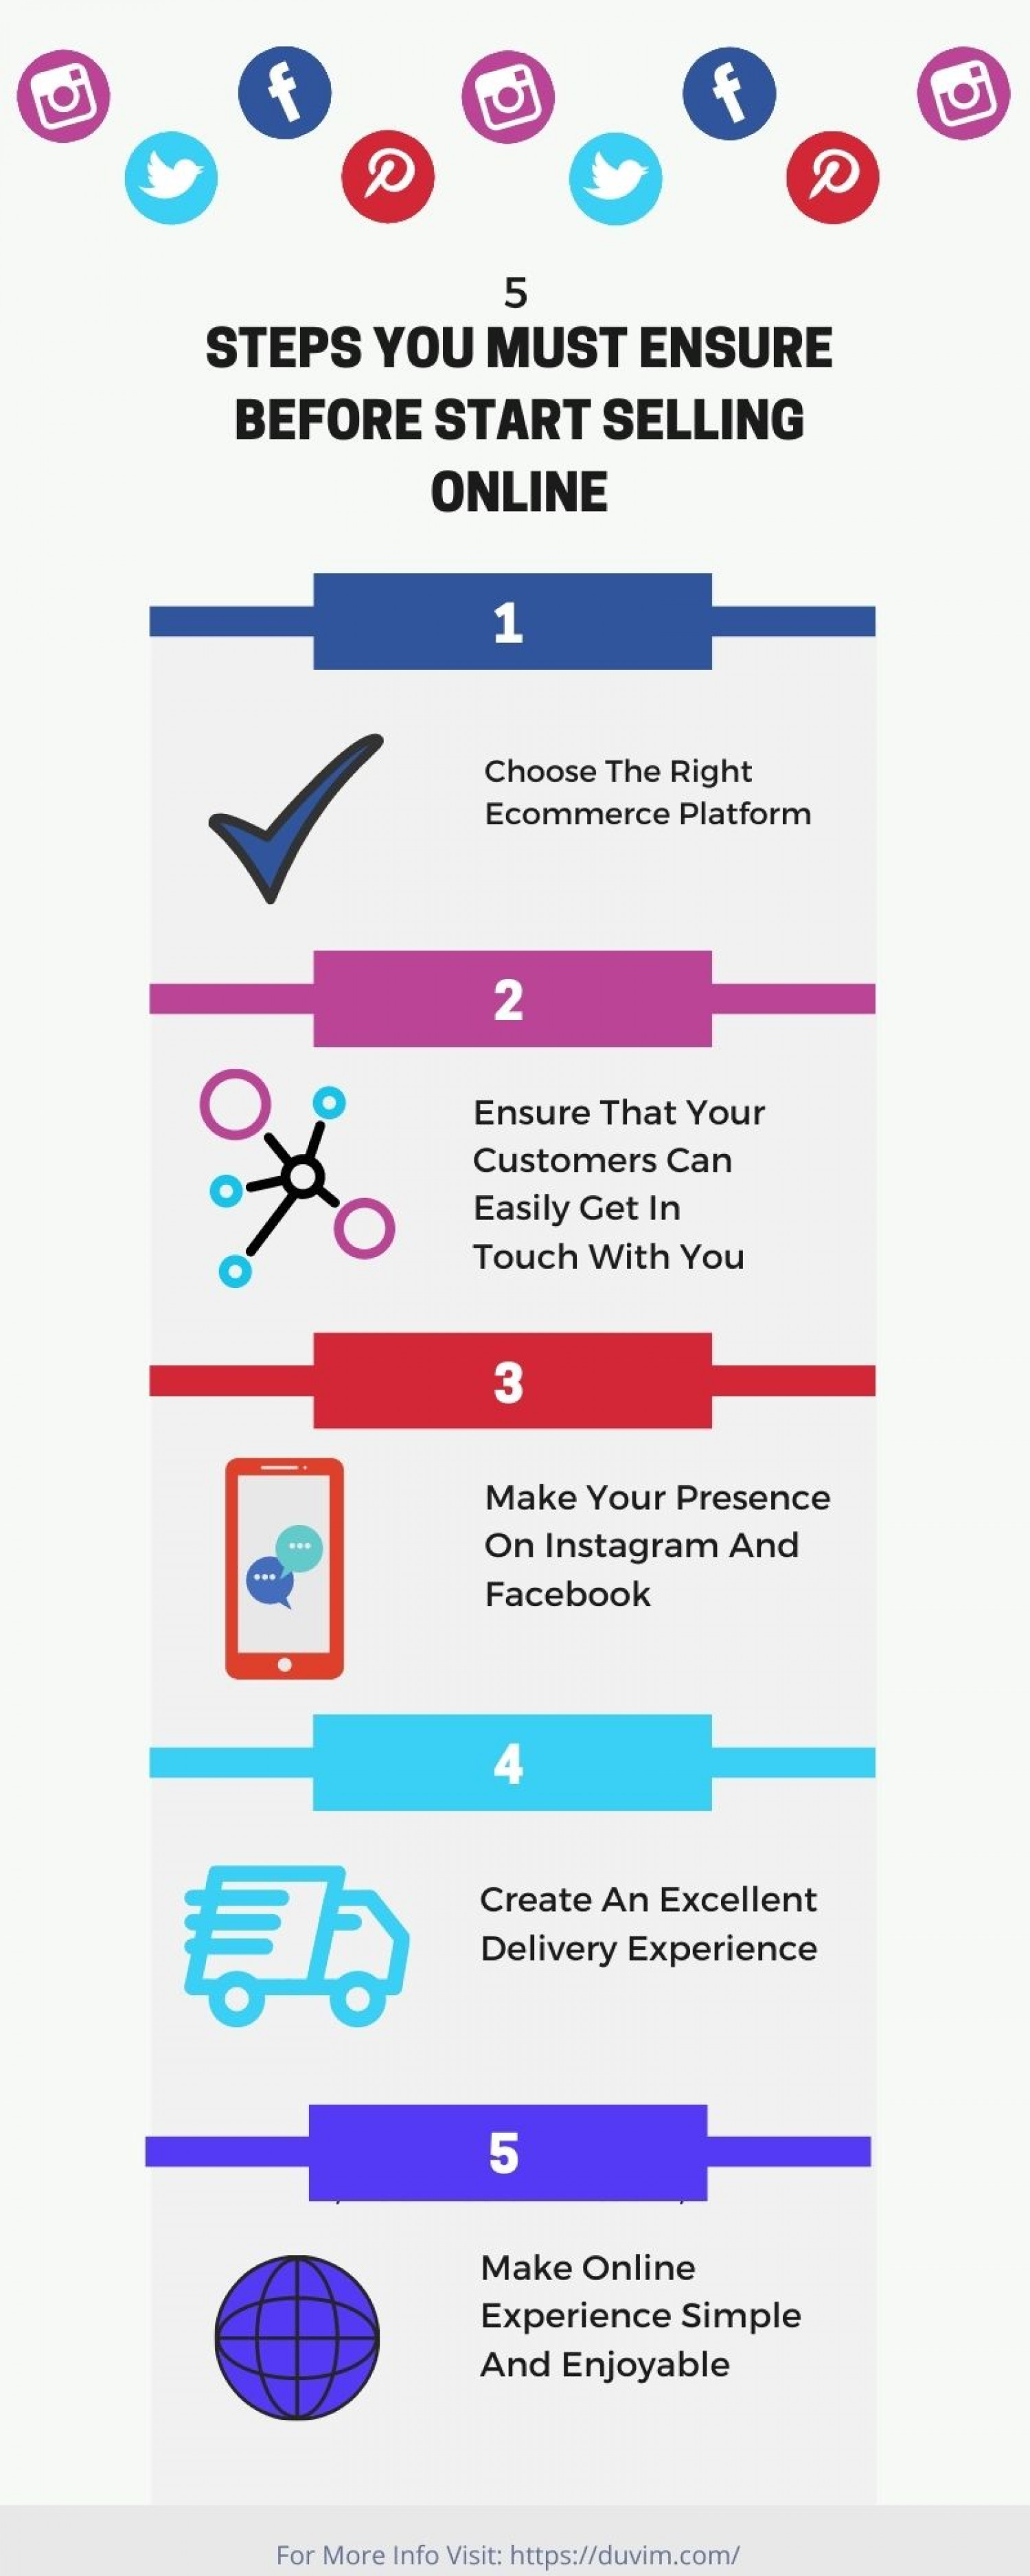 5 Steps You Must Ensure Before Start Selling Online Infographic